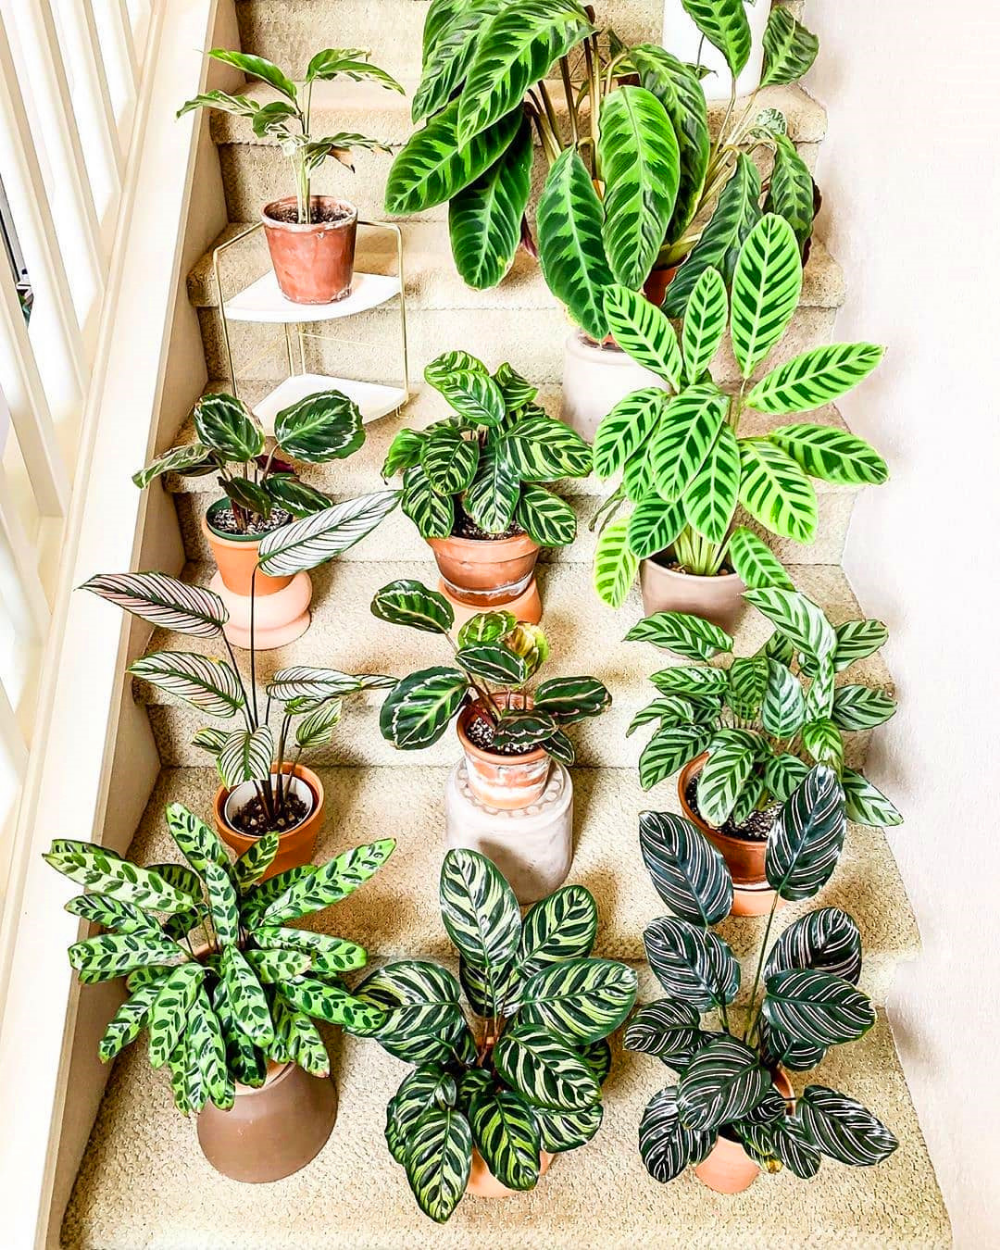 House Plants For Shady Rooms: 80 DIY Plant Stand Ideas To Fill Your Room With Greenery